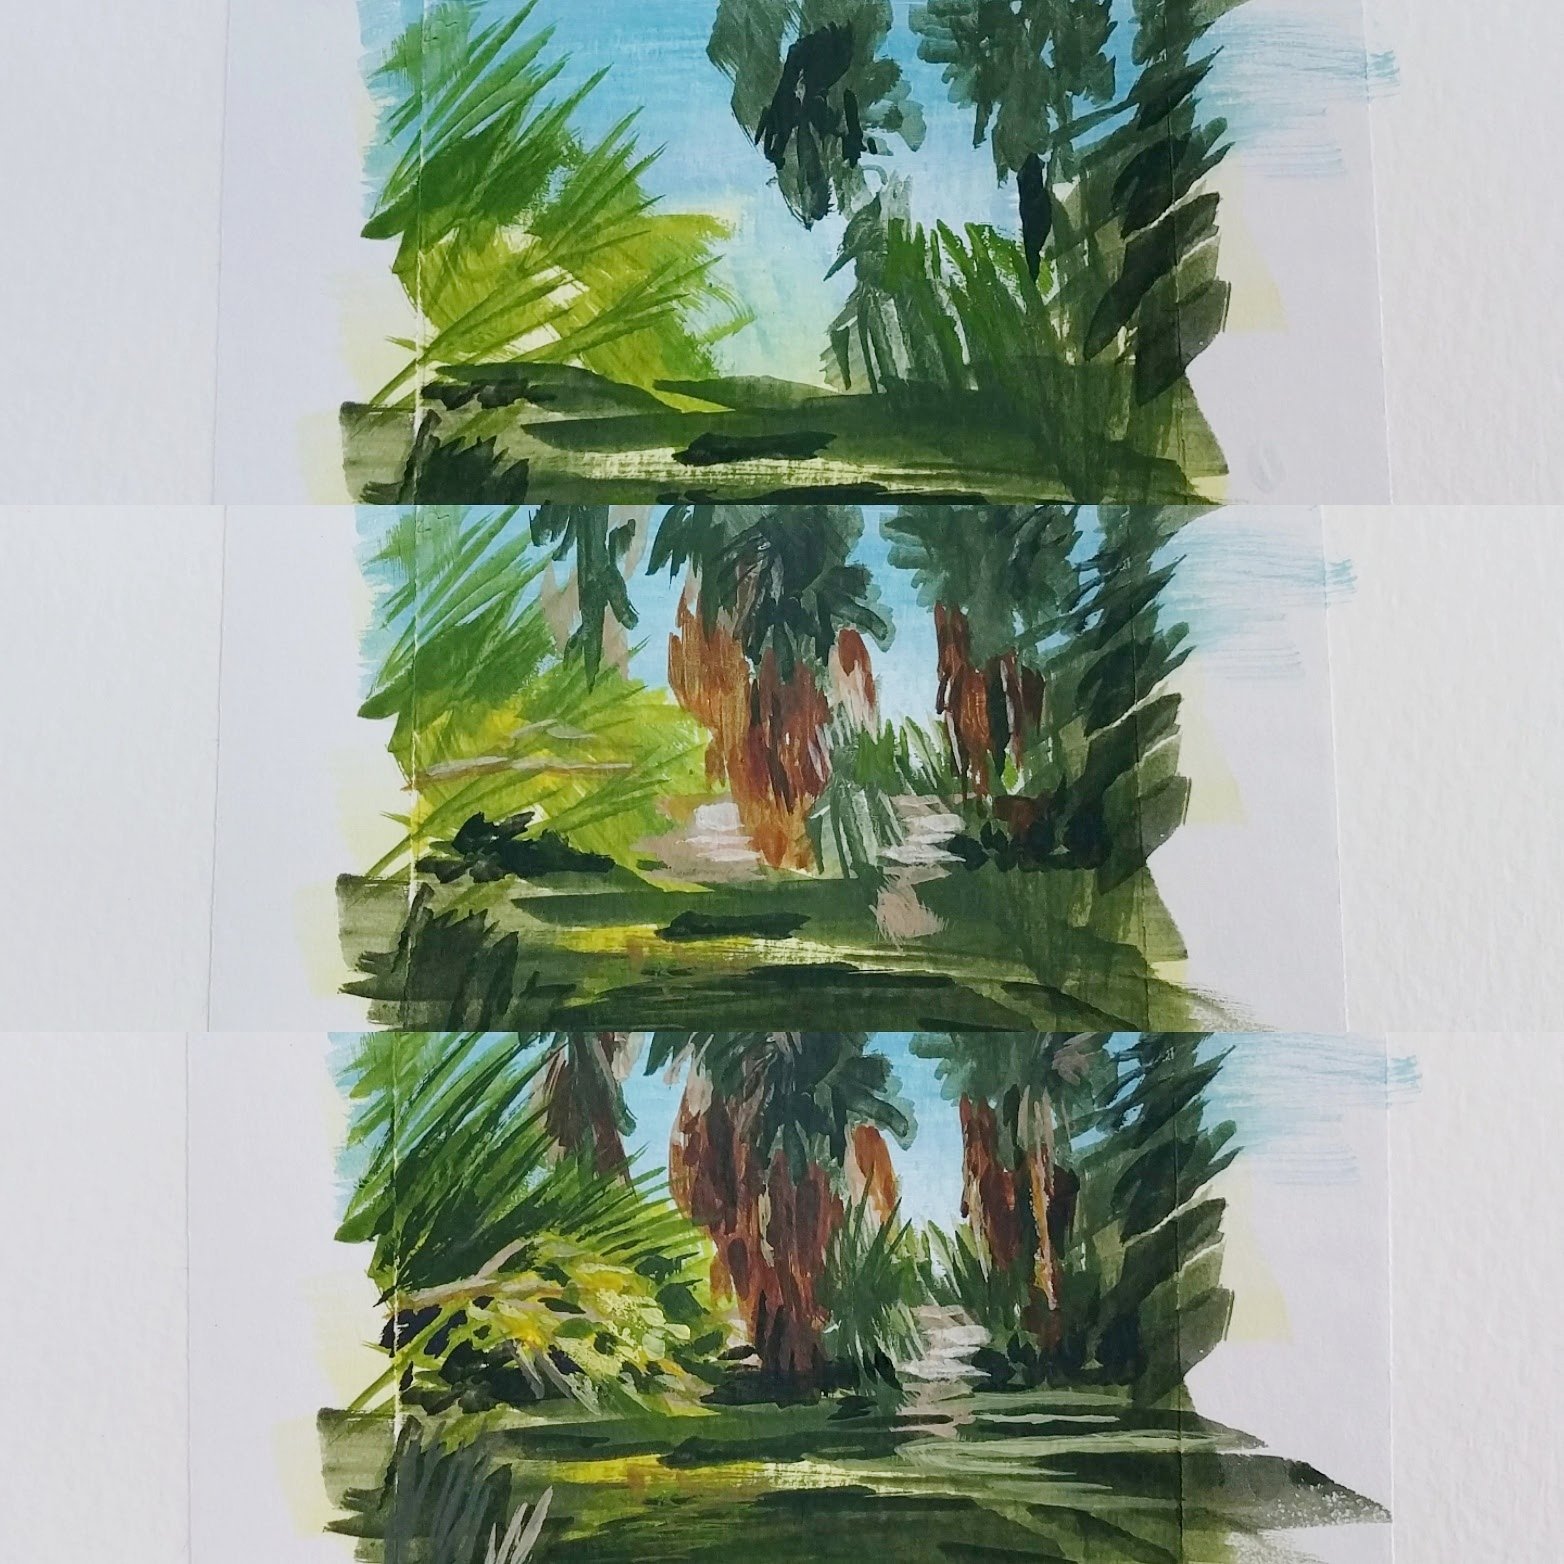 My Small Paintings miniature tiny art plein air watercolour painting of desert oasis with palm trees in 29 Palms Inn California - work in progress shot of three stages of the painting